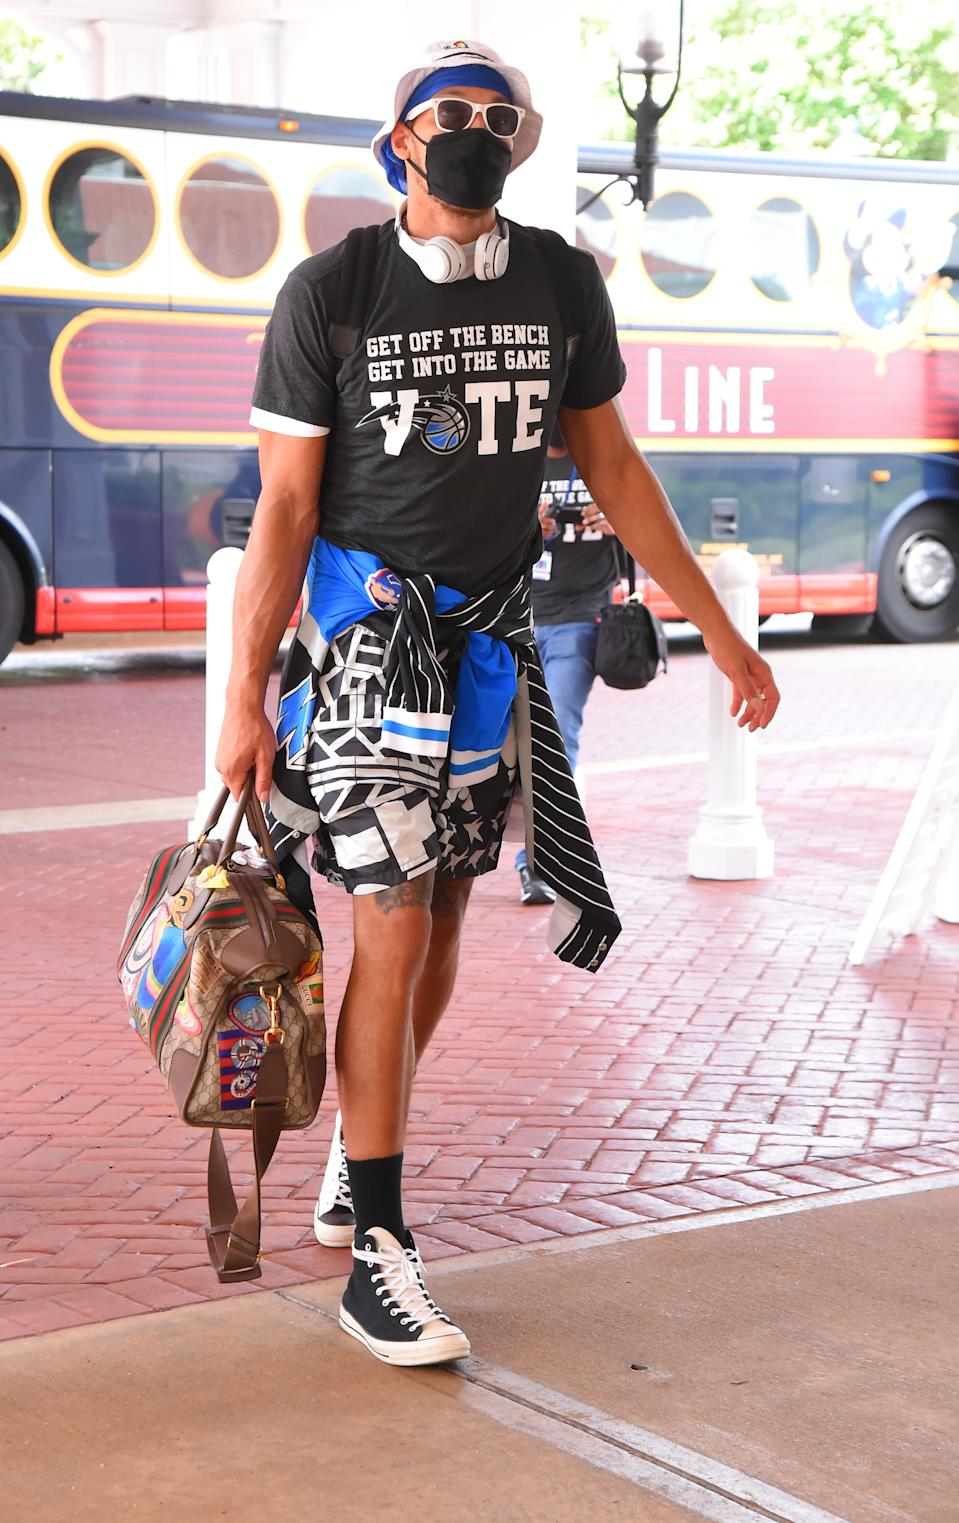 Aaron Gordon #00 of the Orlando Magic arrives at the hotel as part of the NBA Restart 2020 on July 7, 2020 in Orlando, Florida. (Photo by Bill Baptist/NBAE via Getty Images)